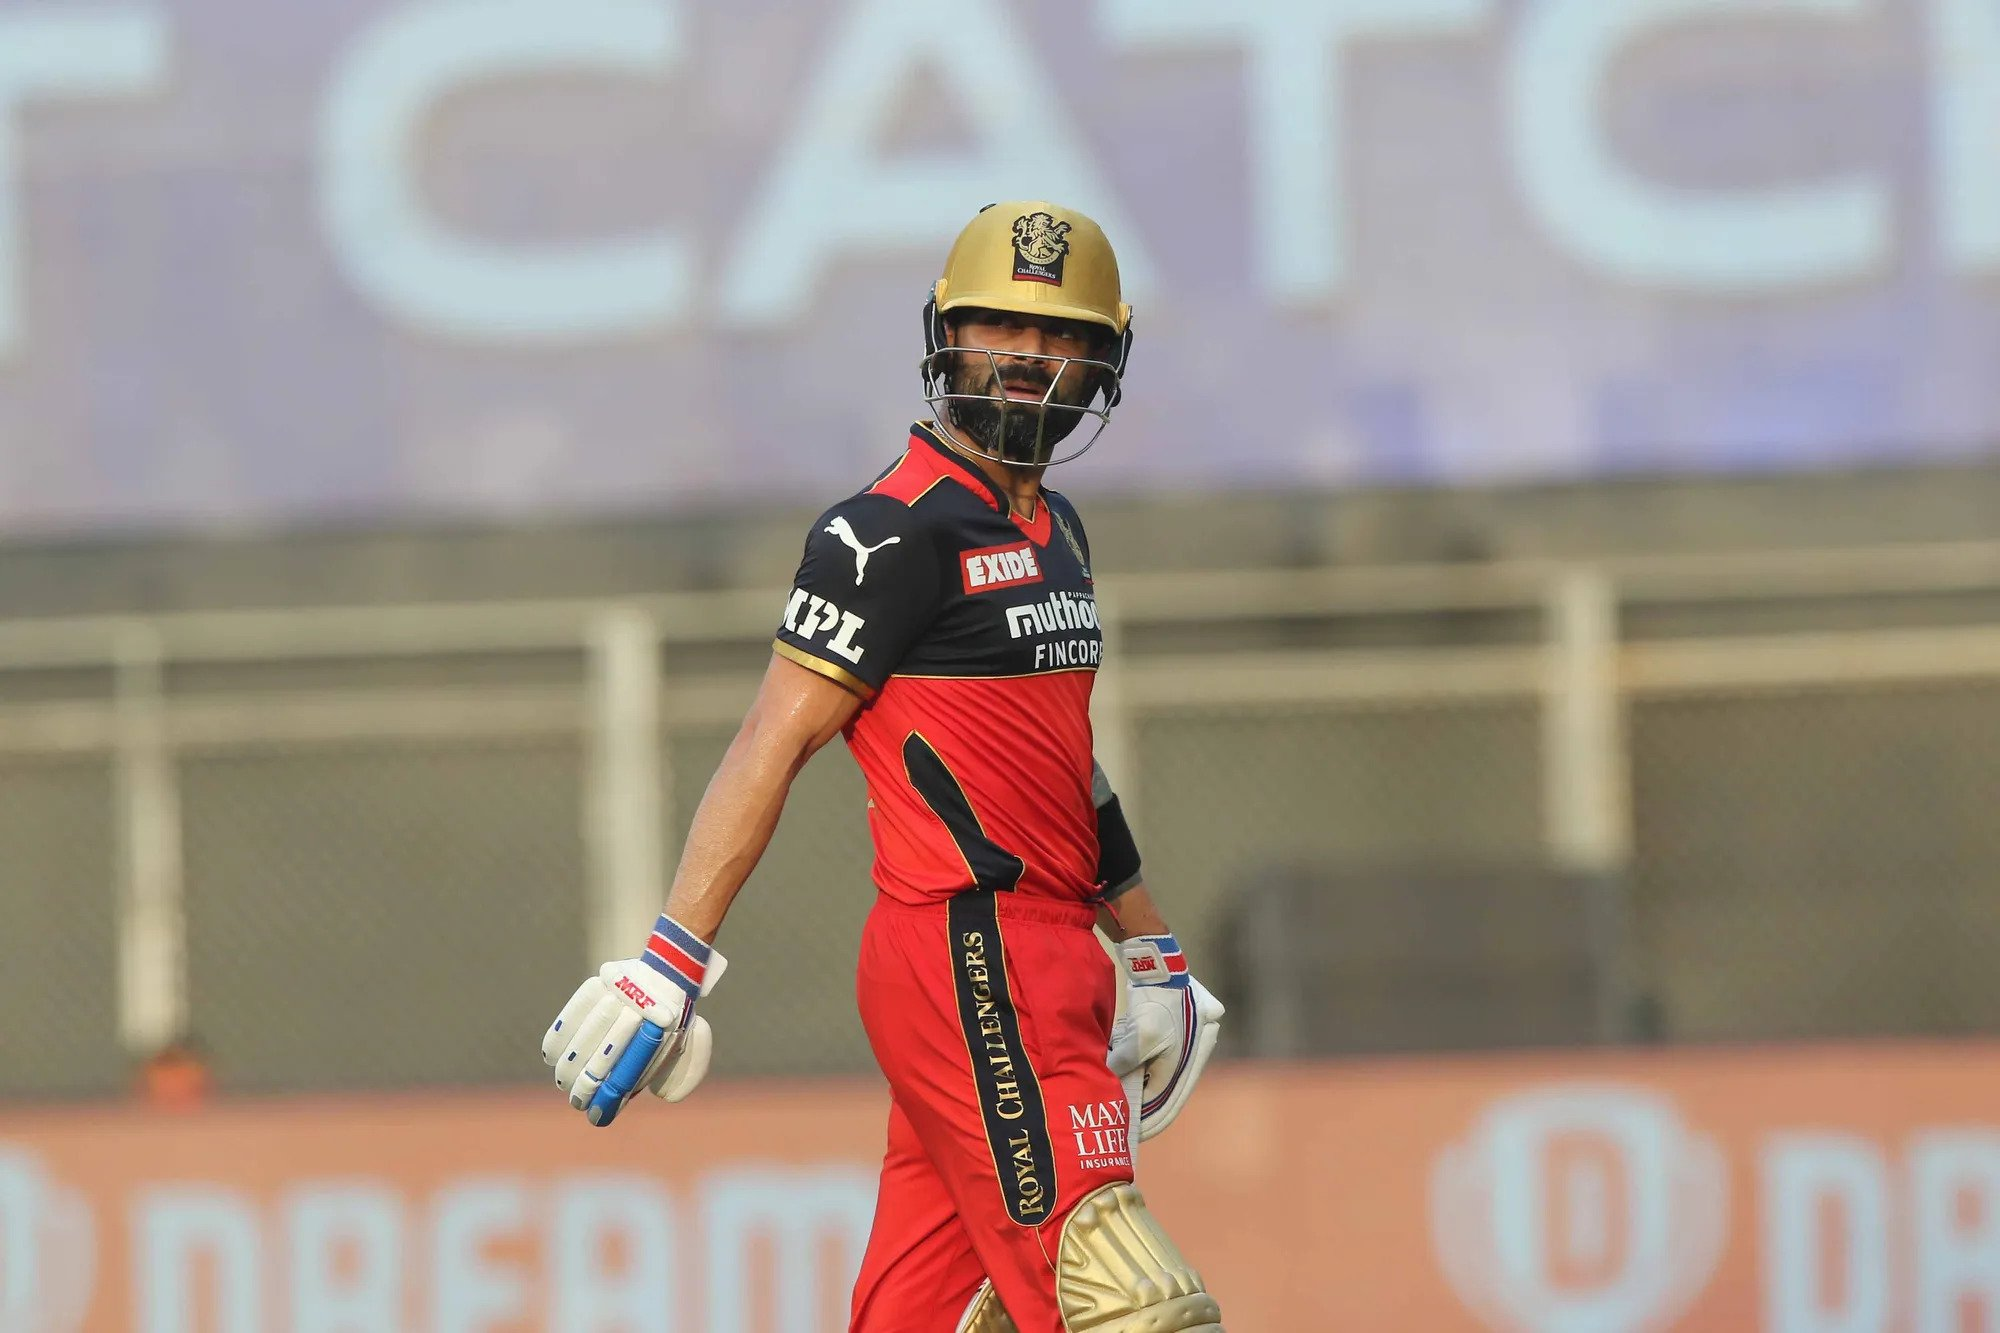 3 Players Who Have The Potential To Replace Virat Kohli As The RCB Captain In IPL 2022